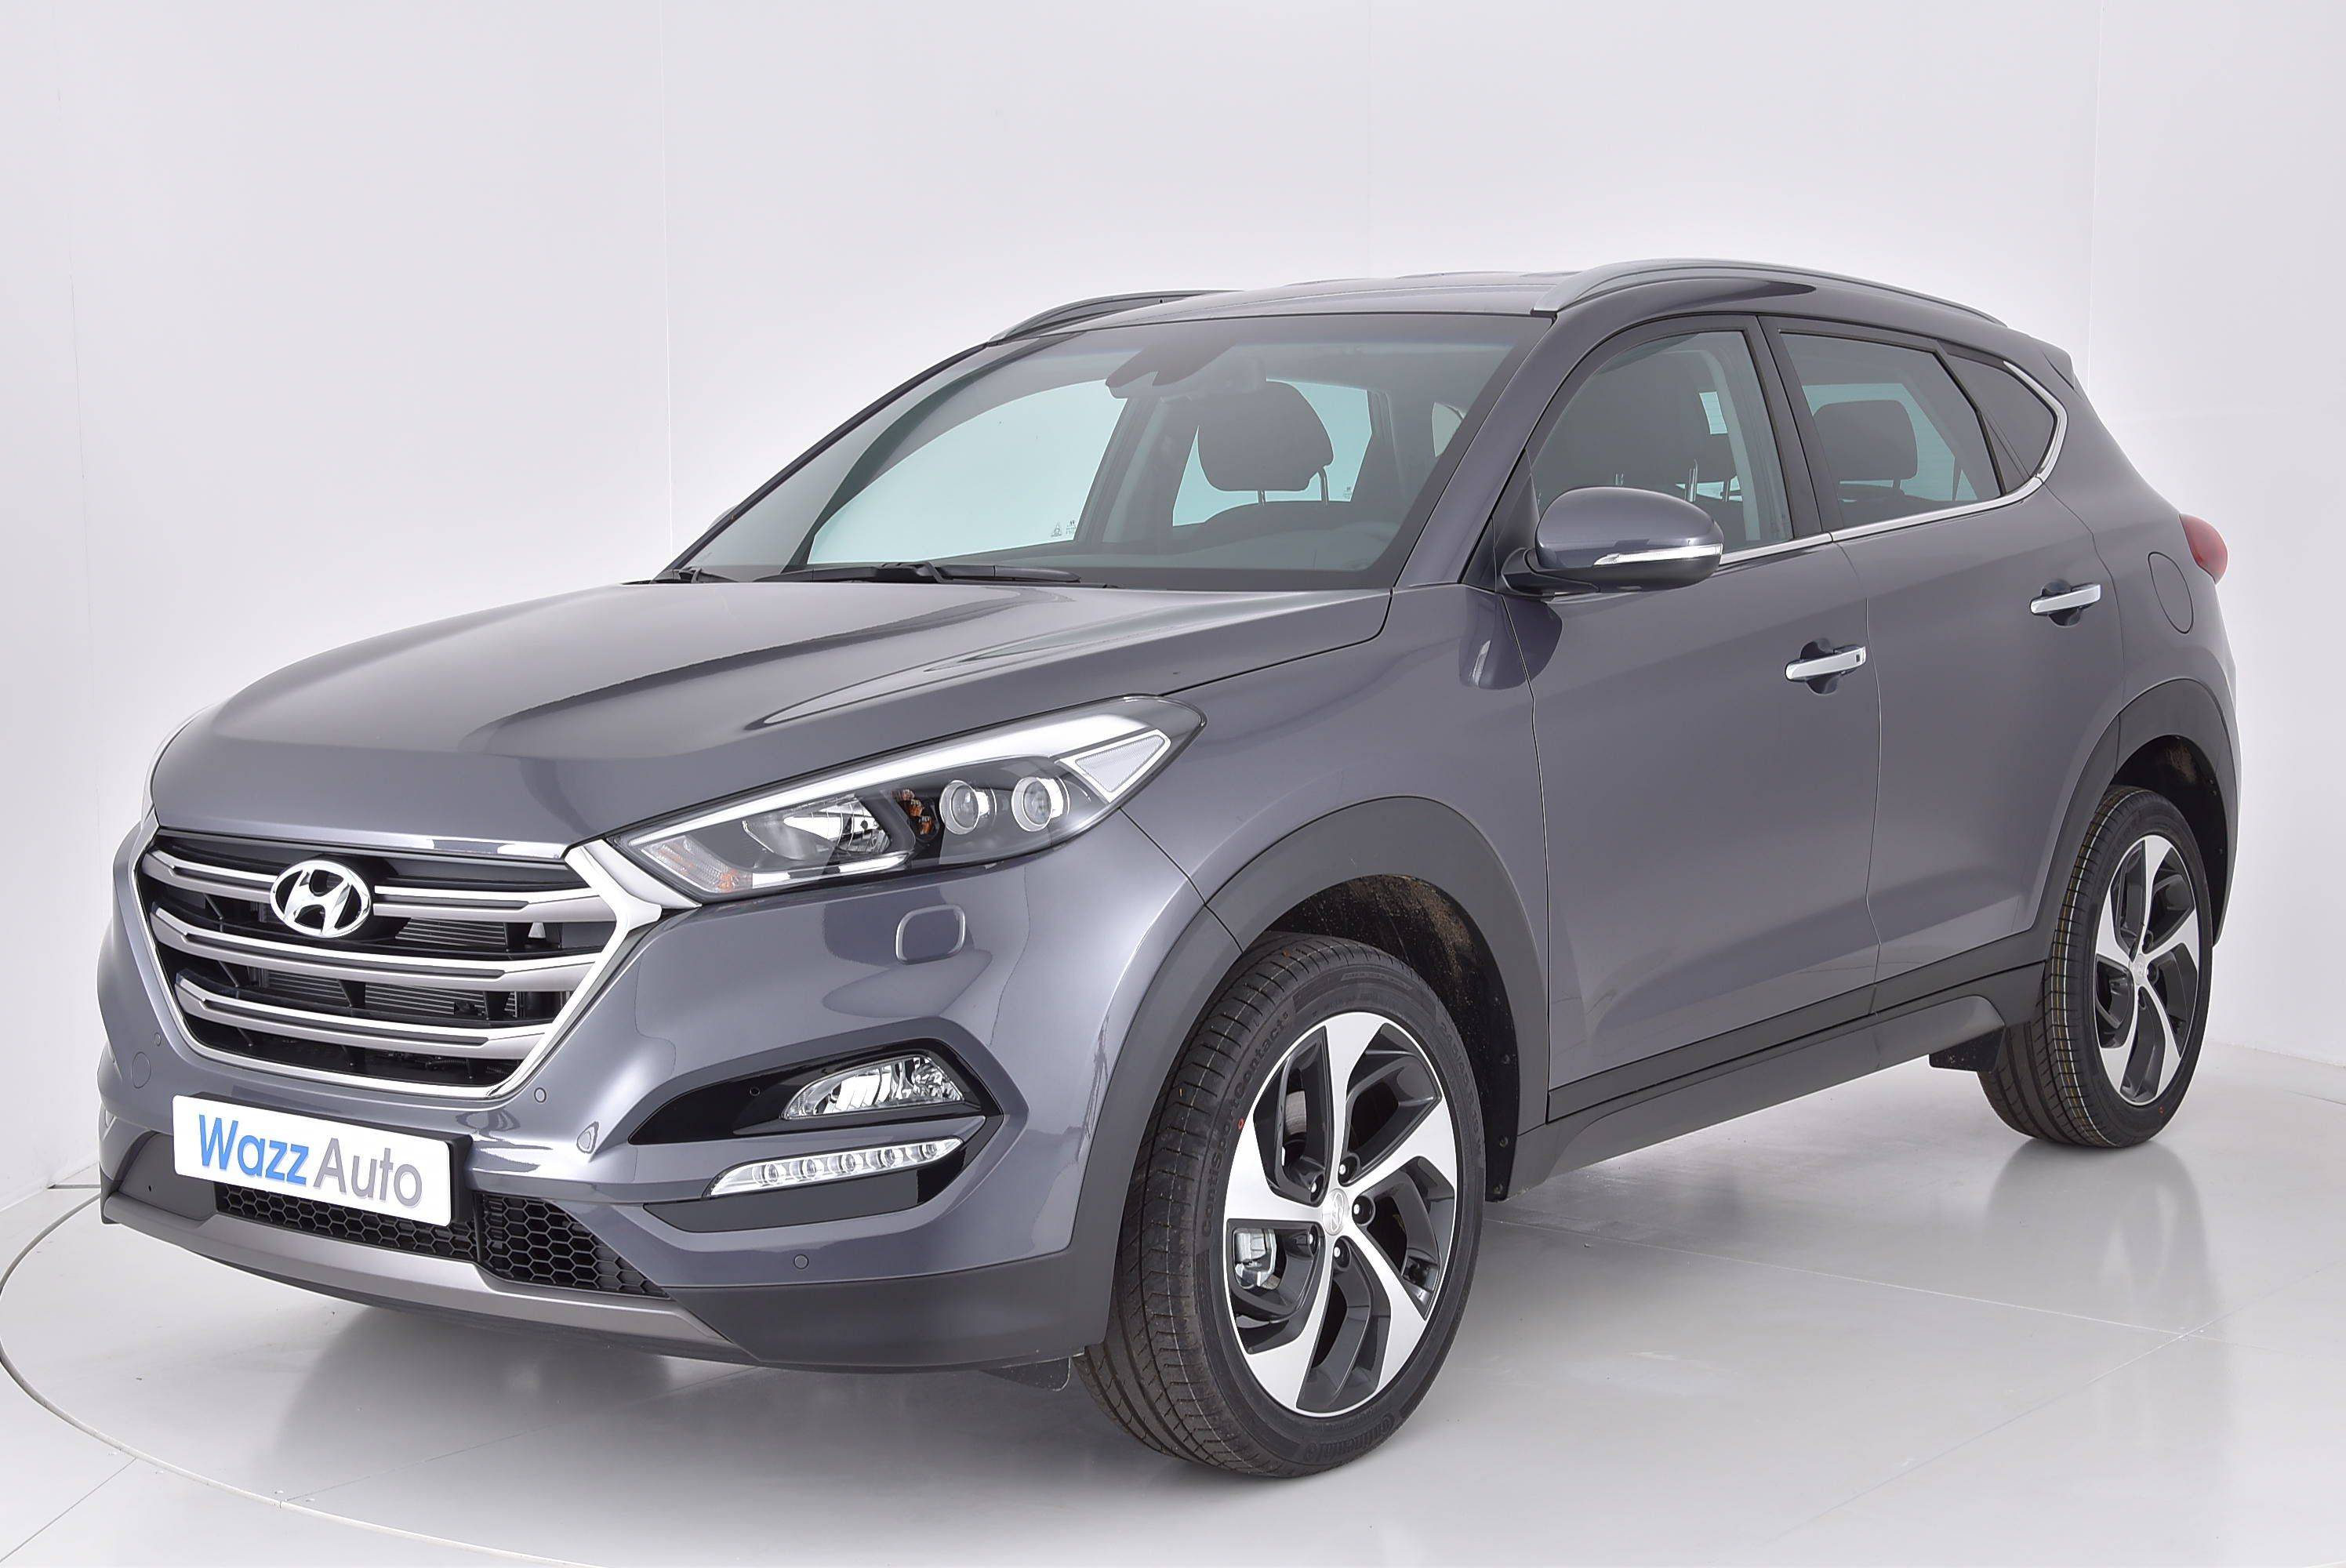 hyundai tucson crdi 2 0 l 136 cv creative couleur micron grey pinterest. Black Bedroom Furniture Sets. Home Design Ideas